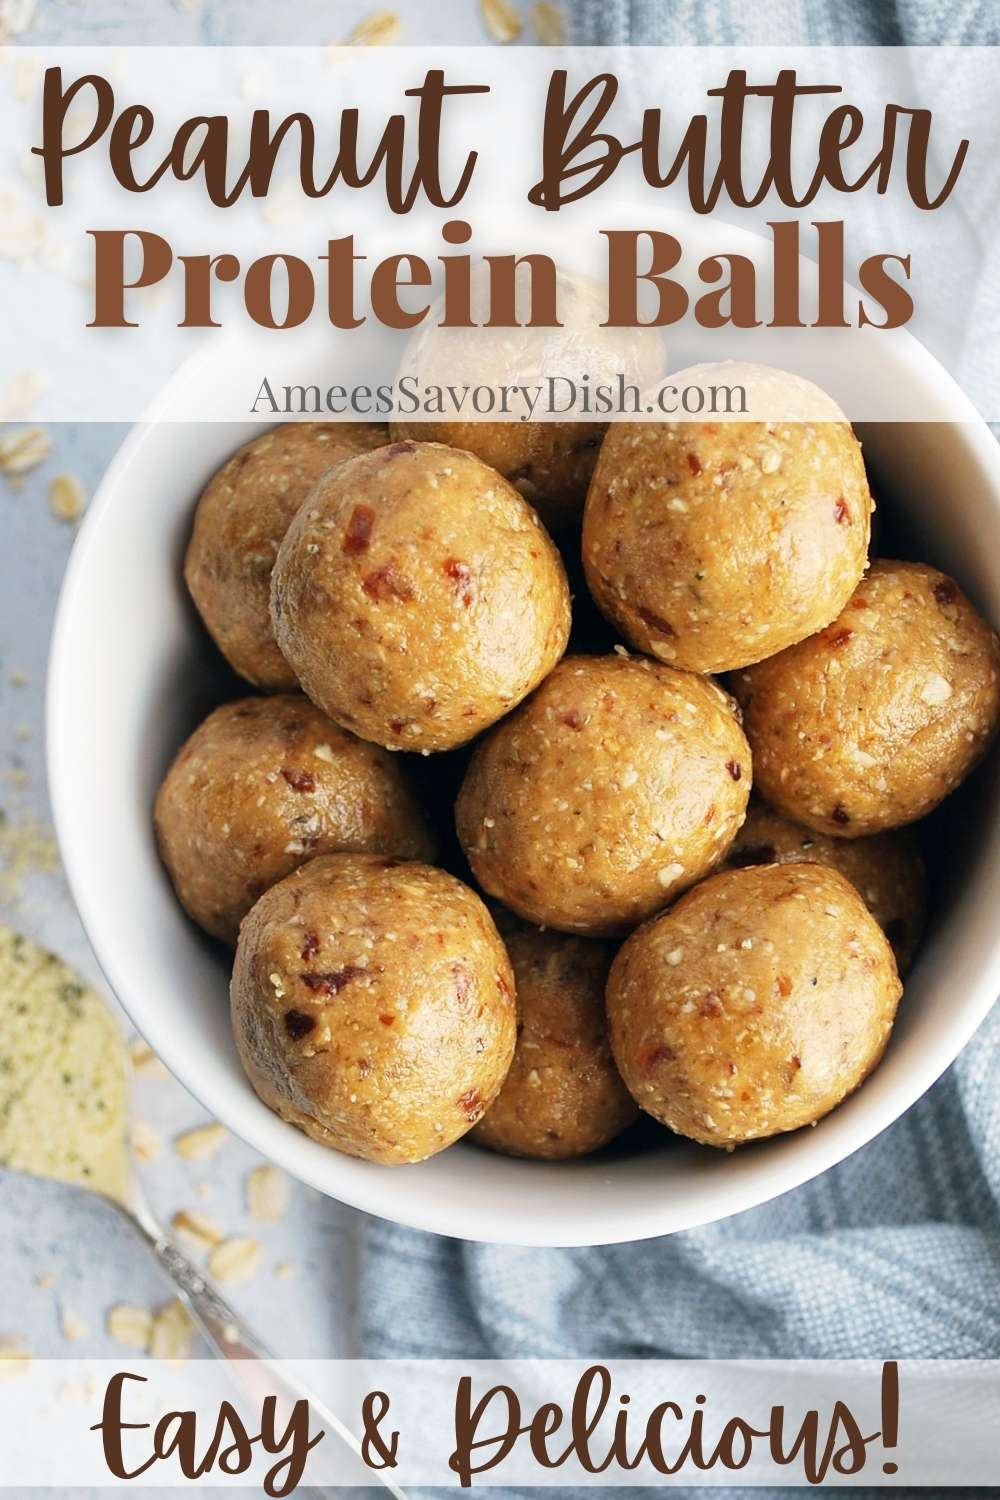 When you need a boost of energy, try this easy recipe for peanut butter protein balls with dates made with oats, coconut, dates, peanut butter, hemp seeds, flaxseed, coconut oil, and honey. #proteinballs #energybites #healthysnacks #peanutbutterballs #blissballs #energyballs via @Ameessavorydish